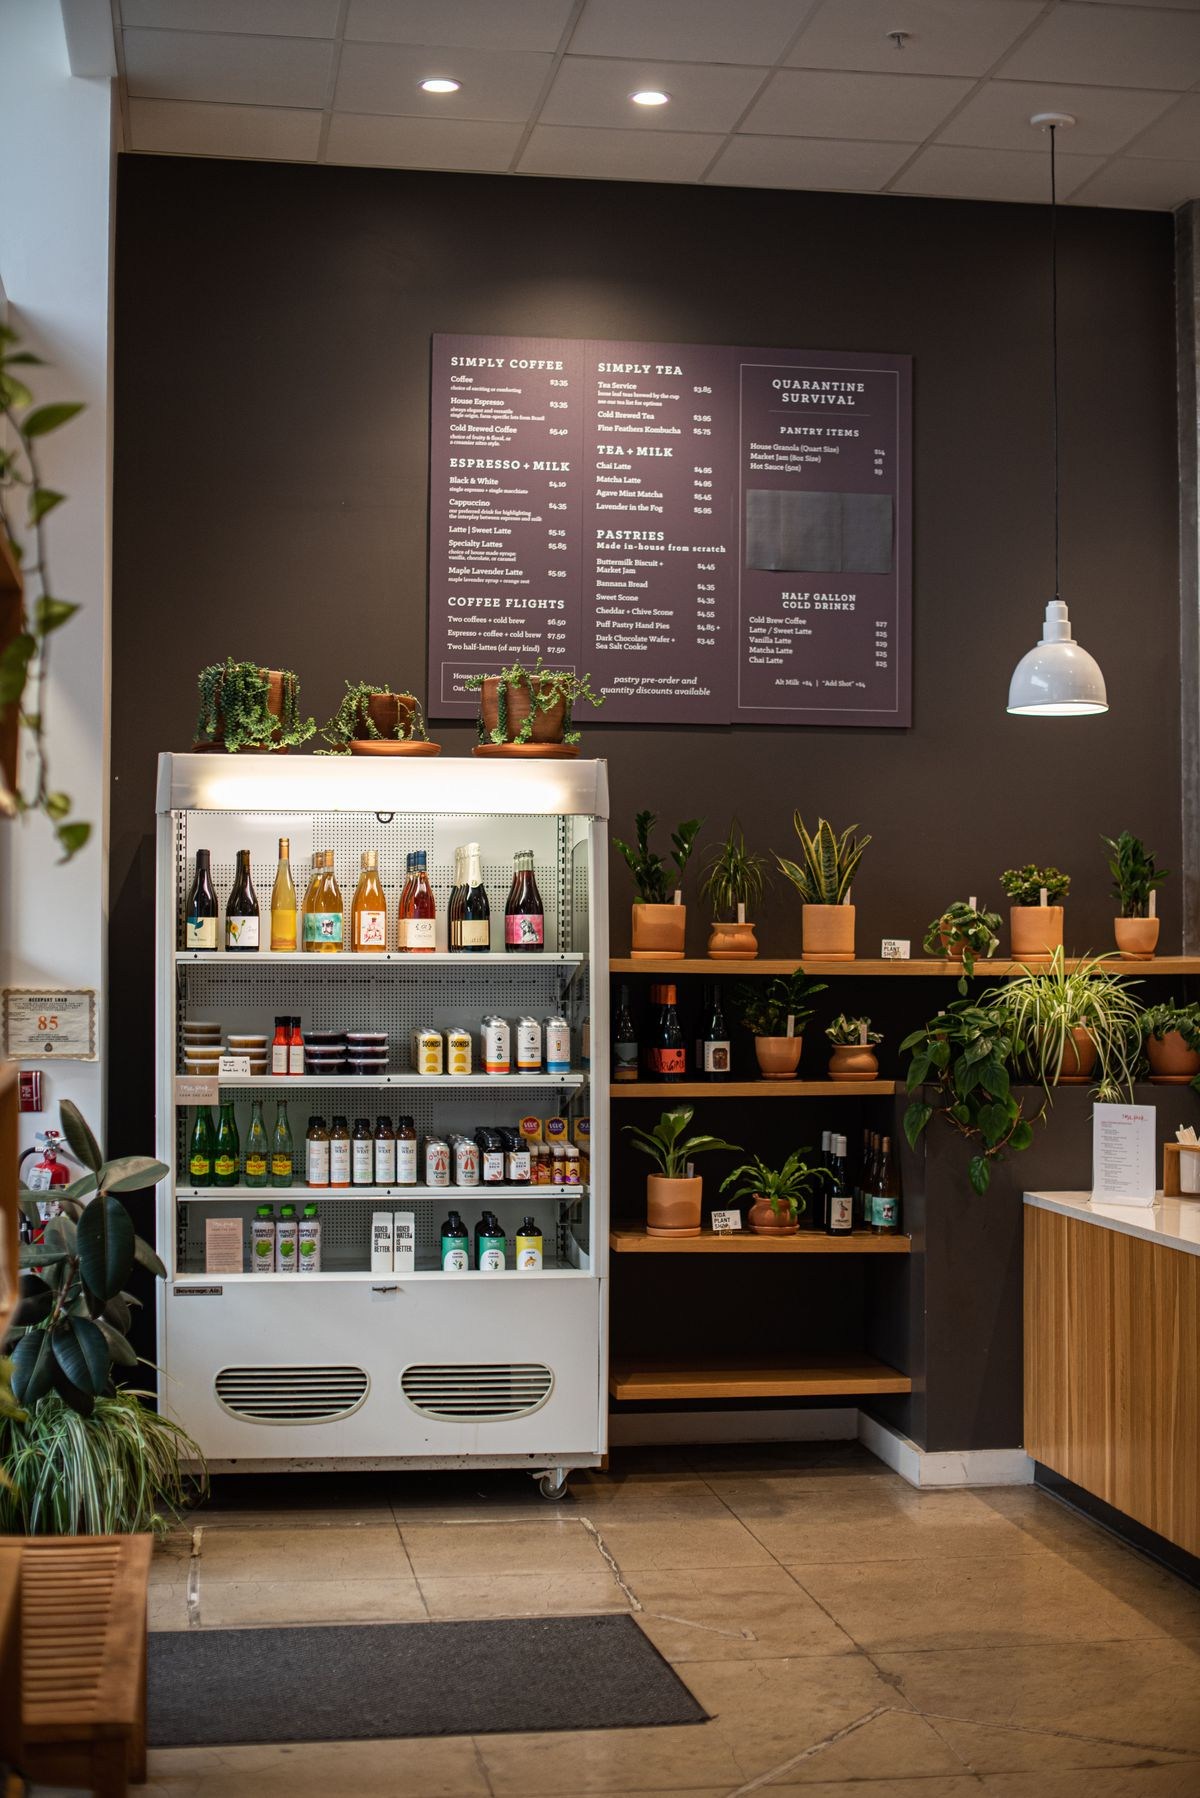 A takeout cooler and menu at a new coffee shop.